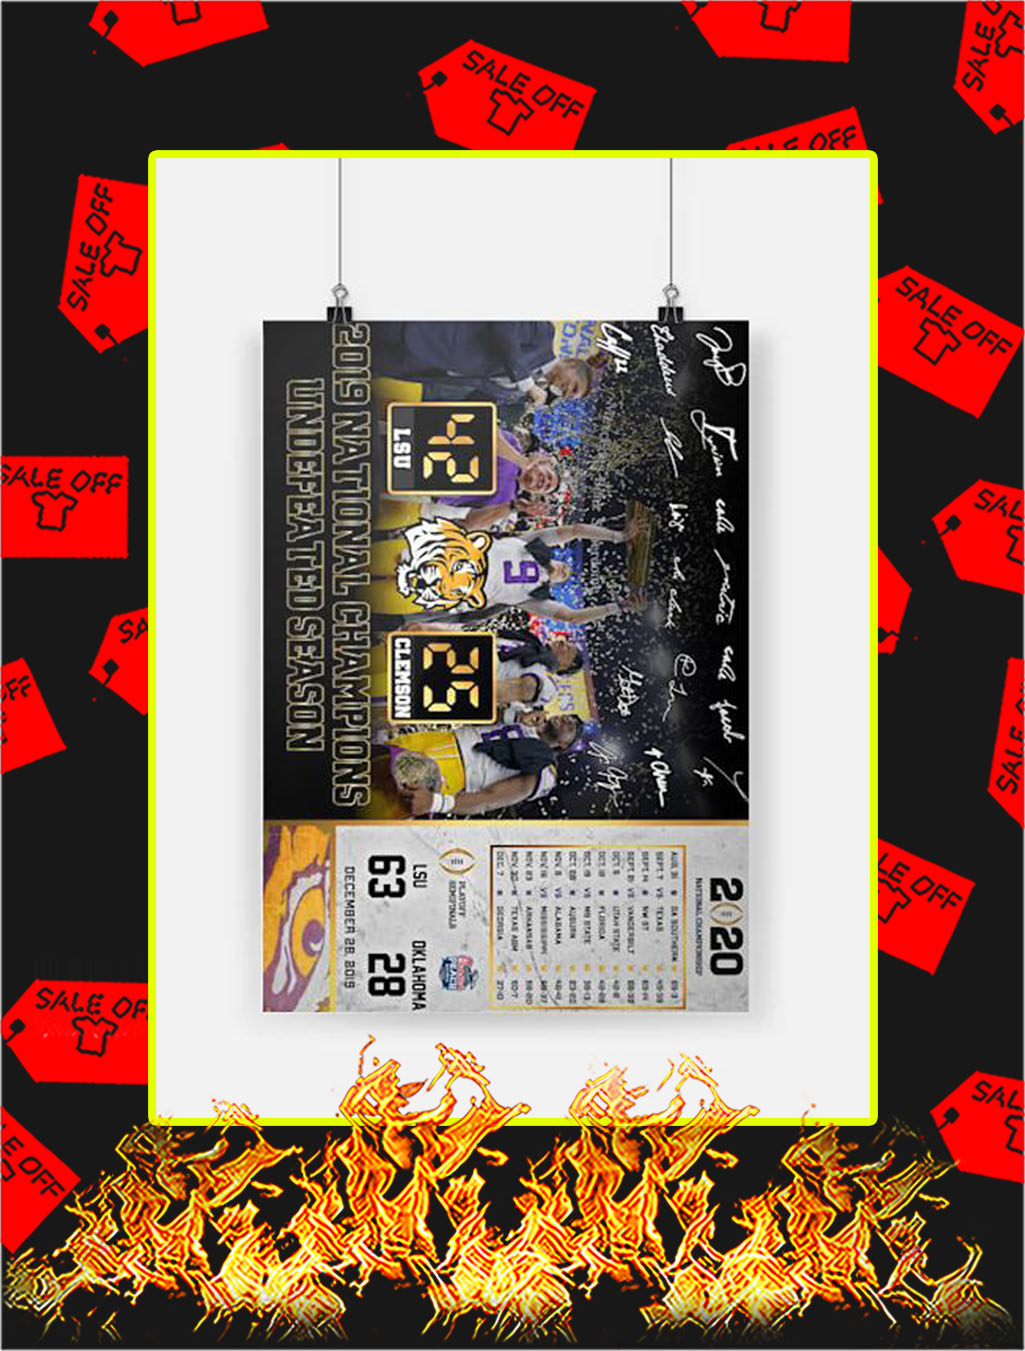 2019 National Champions Undefeated Season LSU Poster - A4